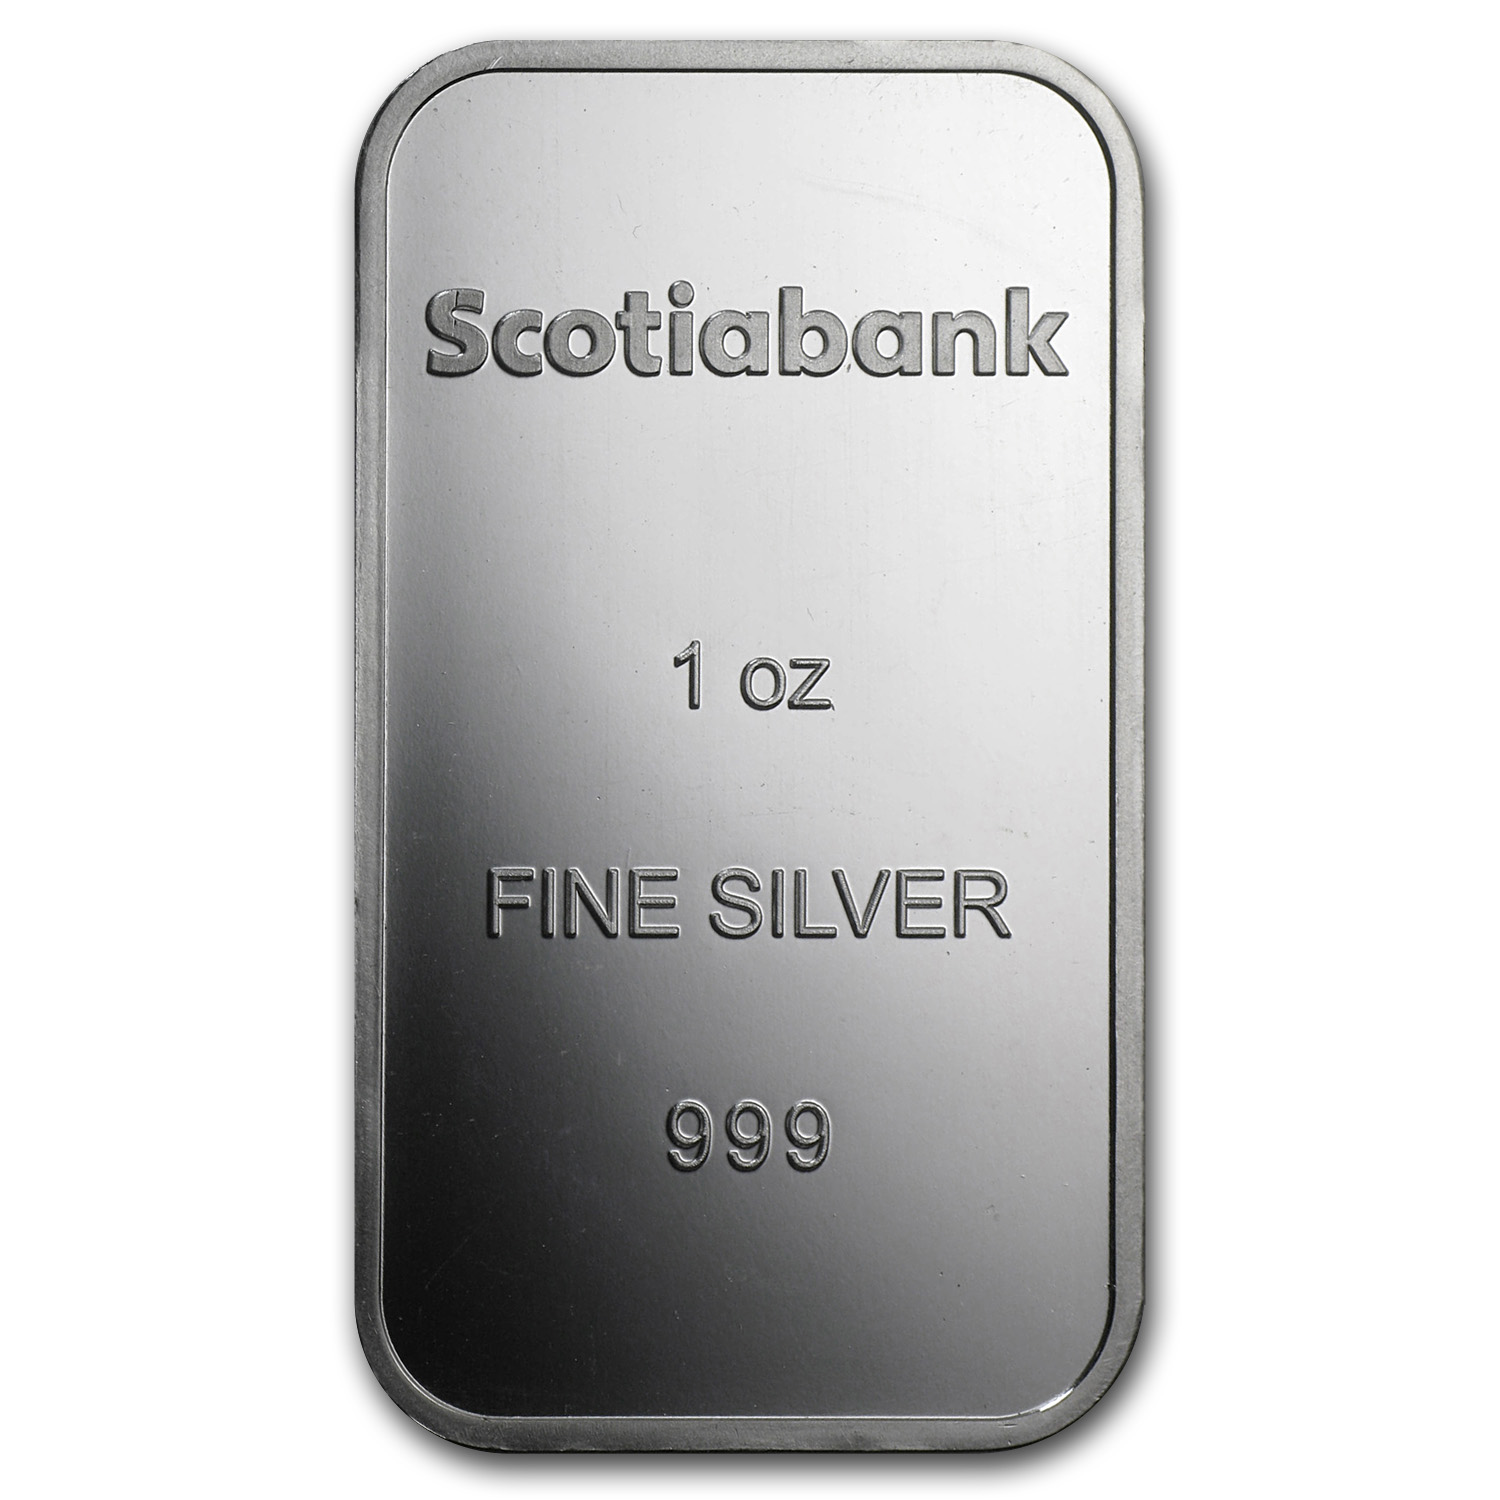 1 oz Silver Bar - Scotiabank